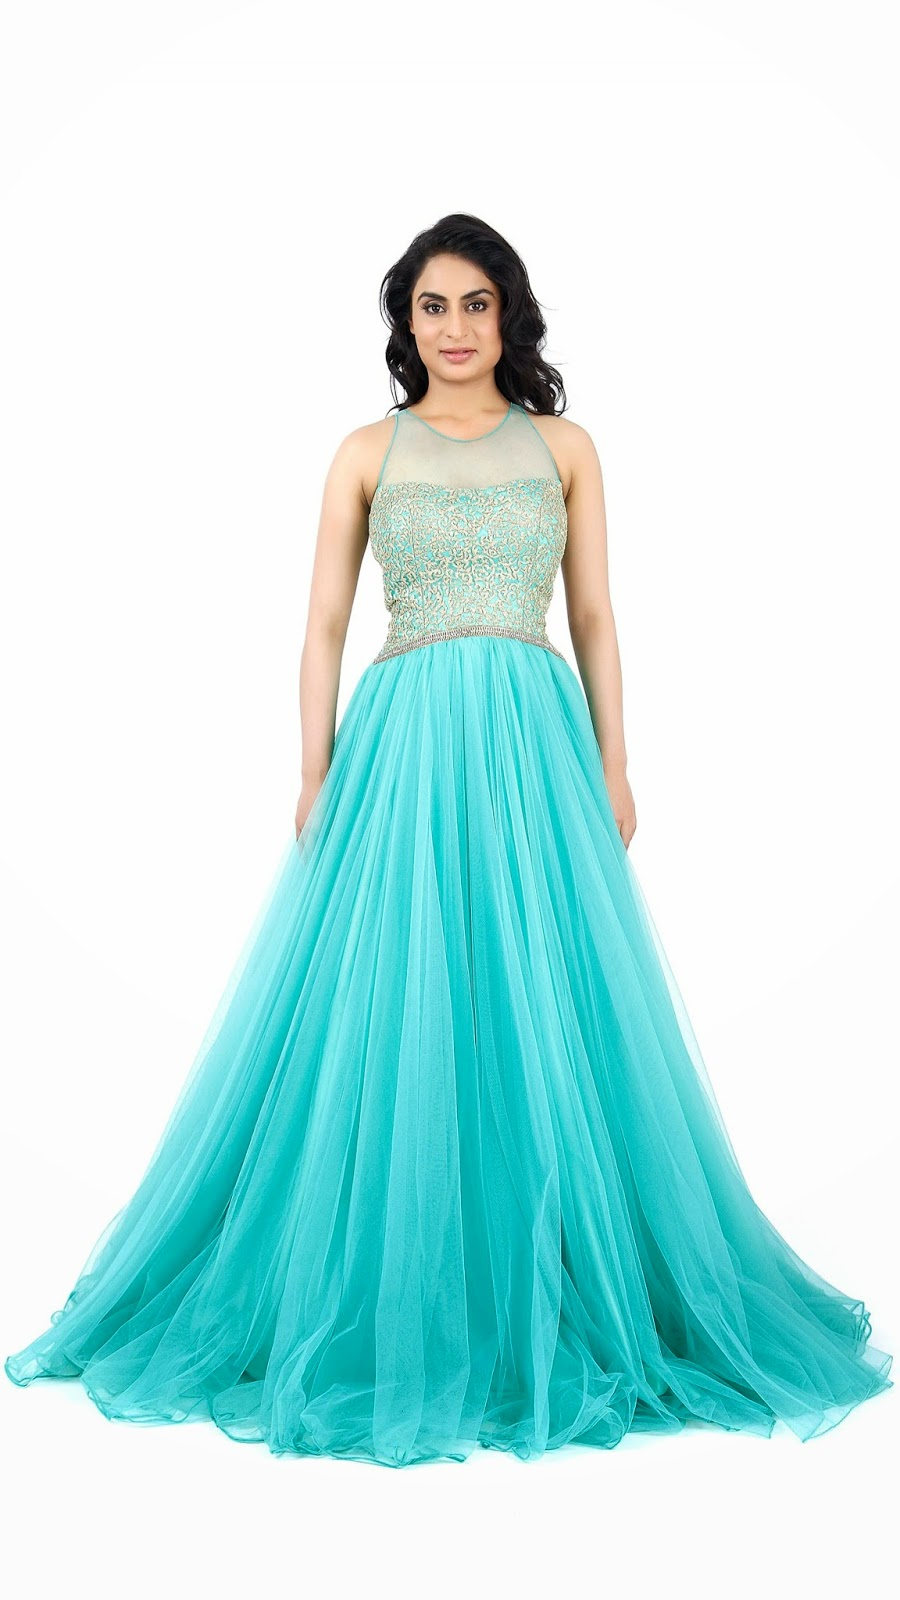 Gowns By Design - Best Seller Dress and Gown Review